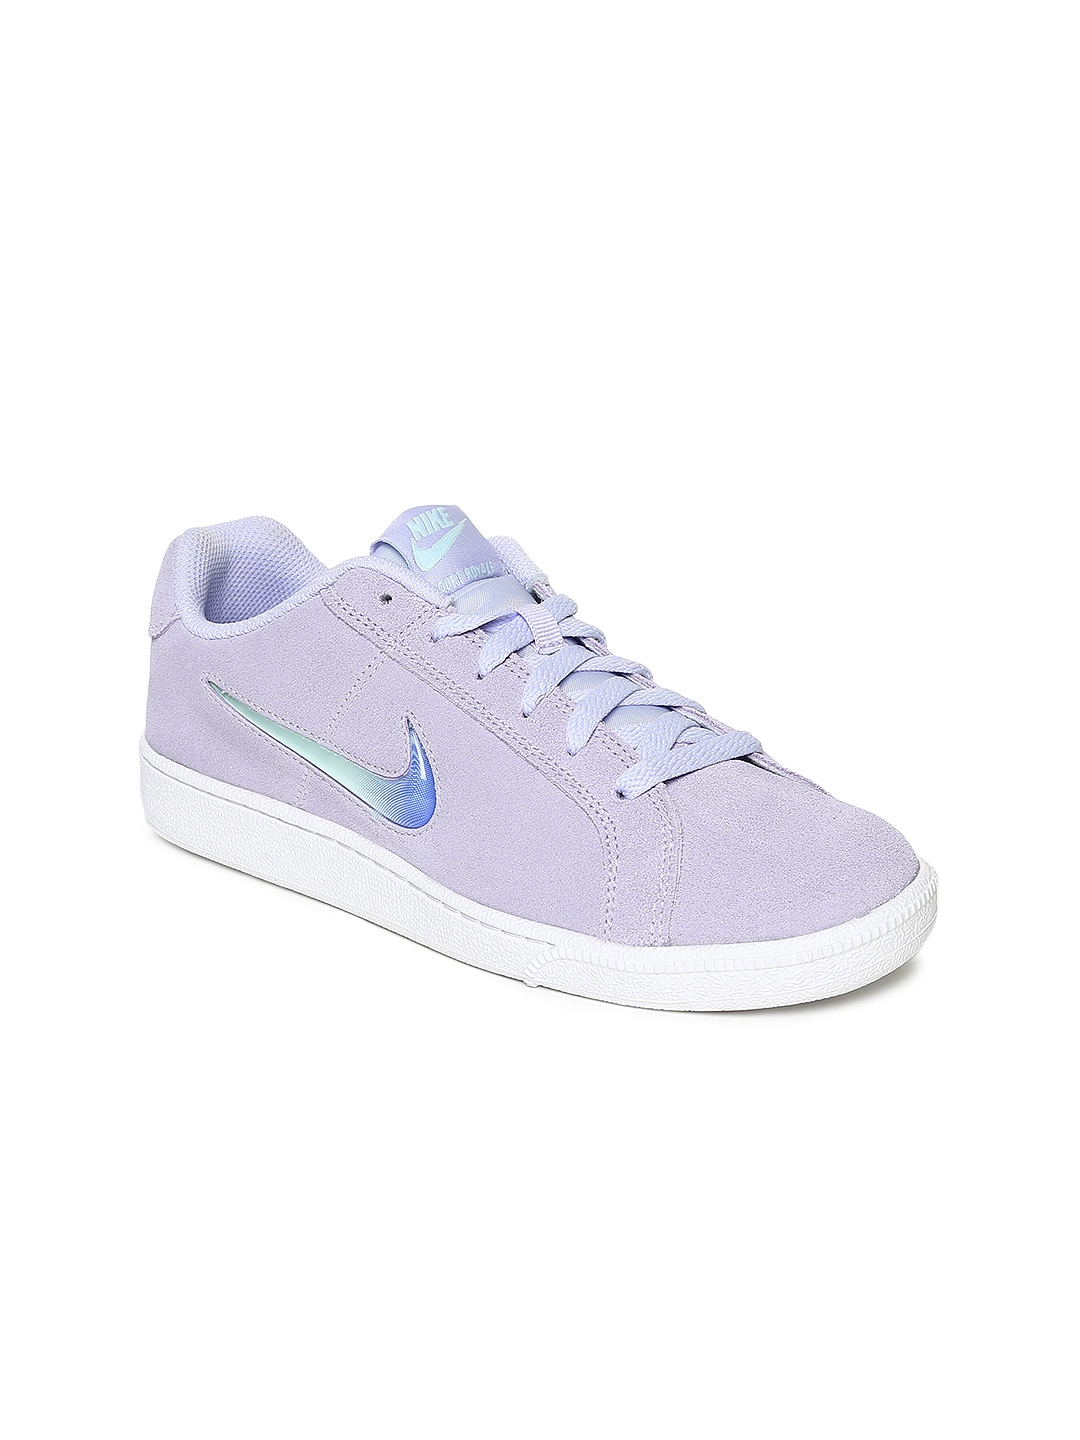 06bc0ac107 Casual Shoes For Women - Buy Women s Casual Shoes Online from Myntra